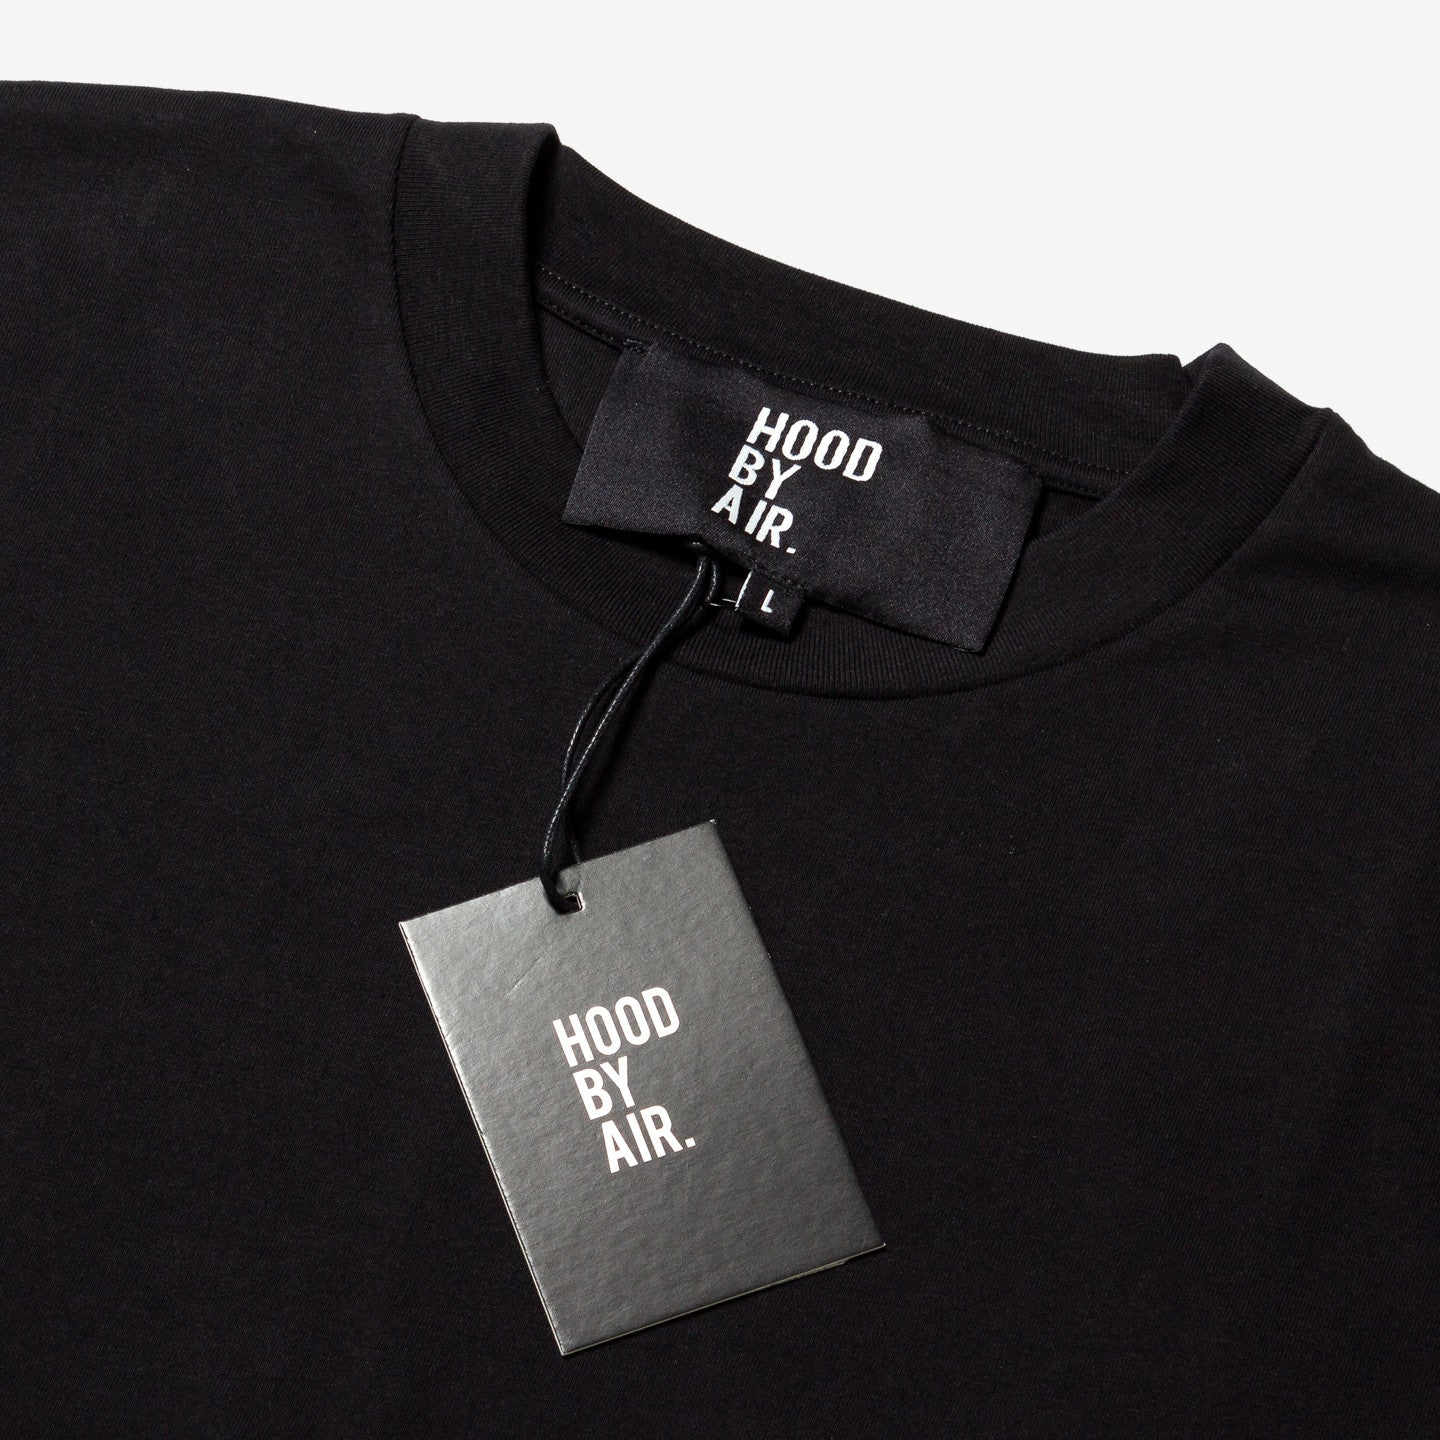 HOOD BY AIR / Black Logo T-shirt